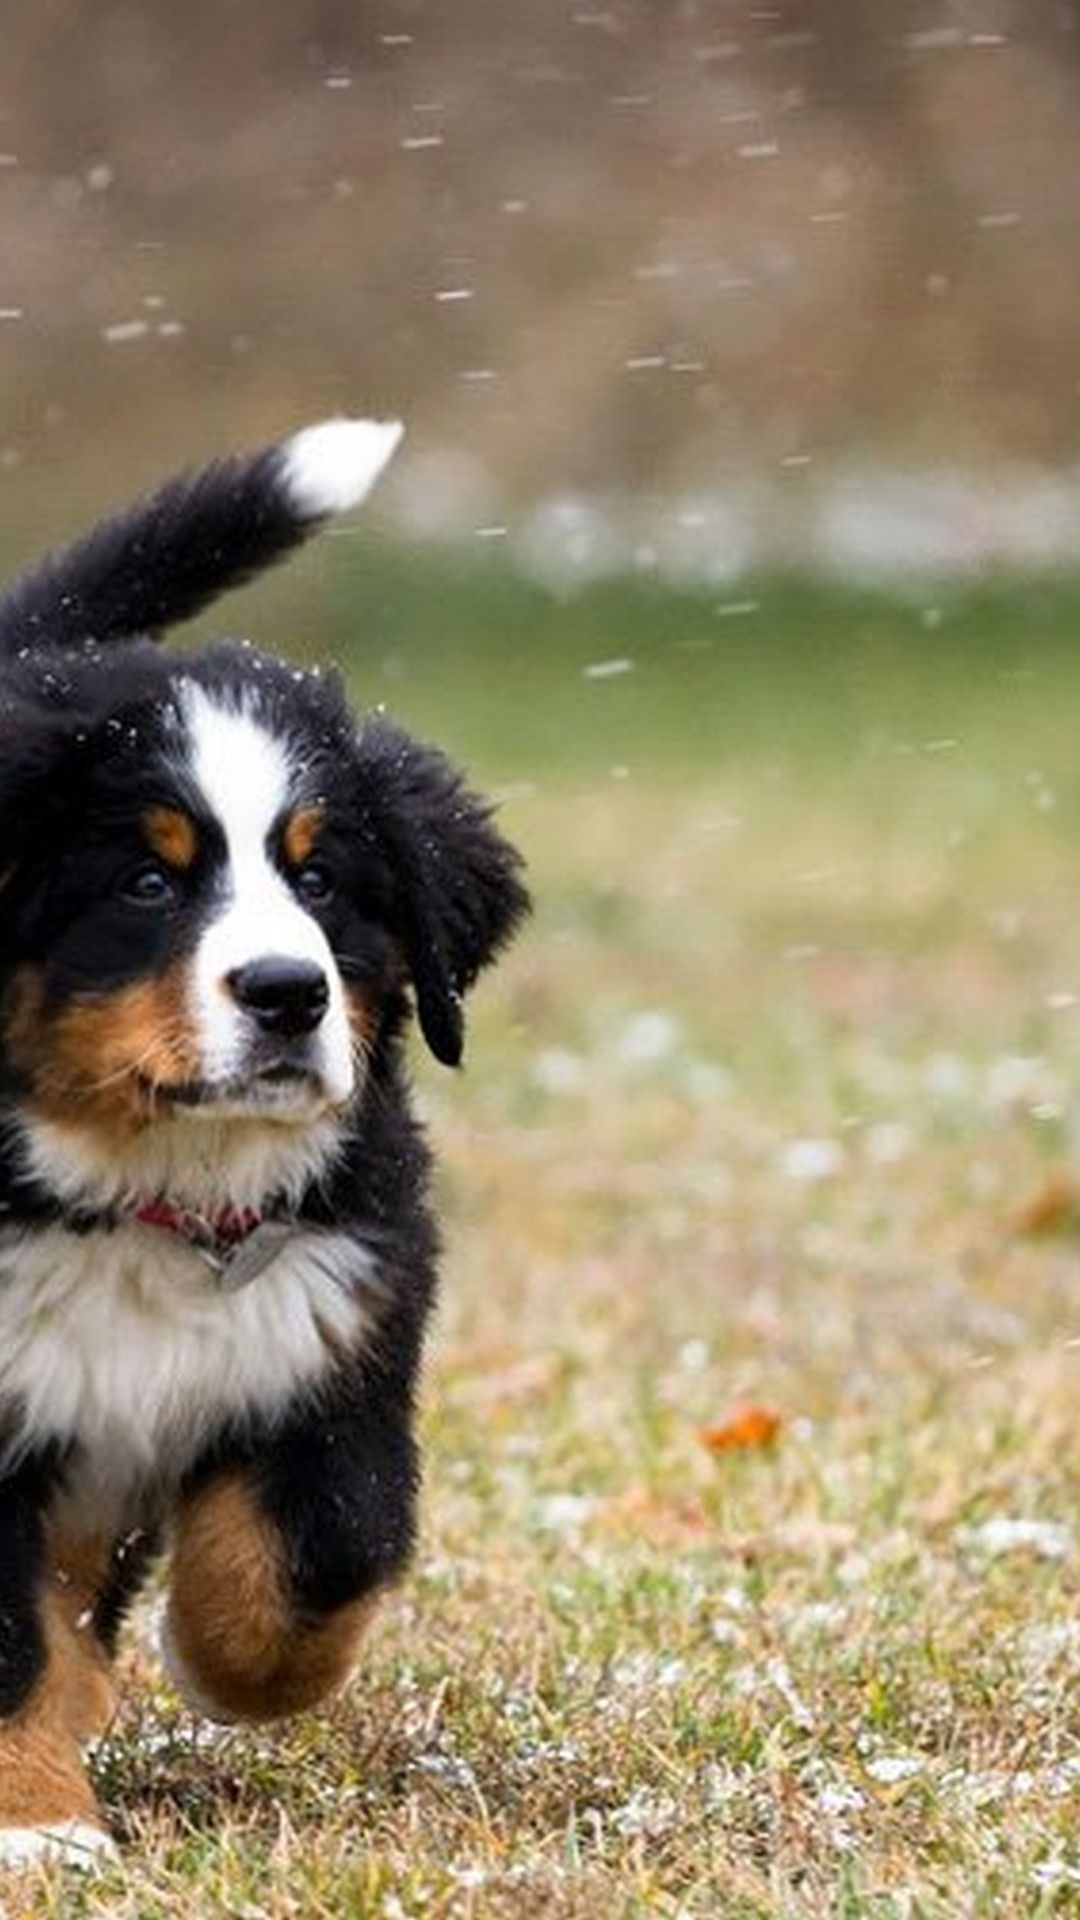 Android Wallpaper Cute Puppies Pictures Best Android Wallpapers Cute Puppy Pictures Puppy Pictures Cute Puppies